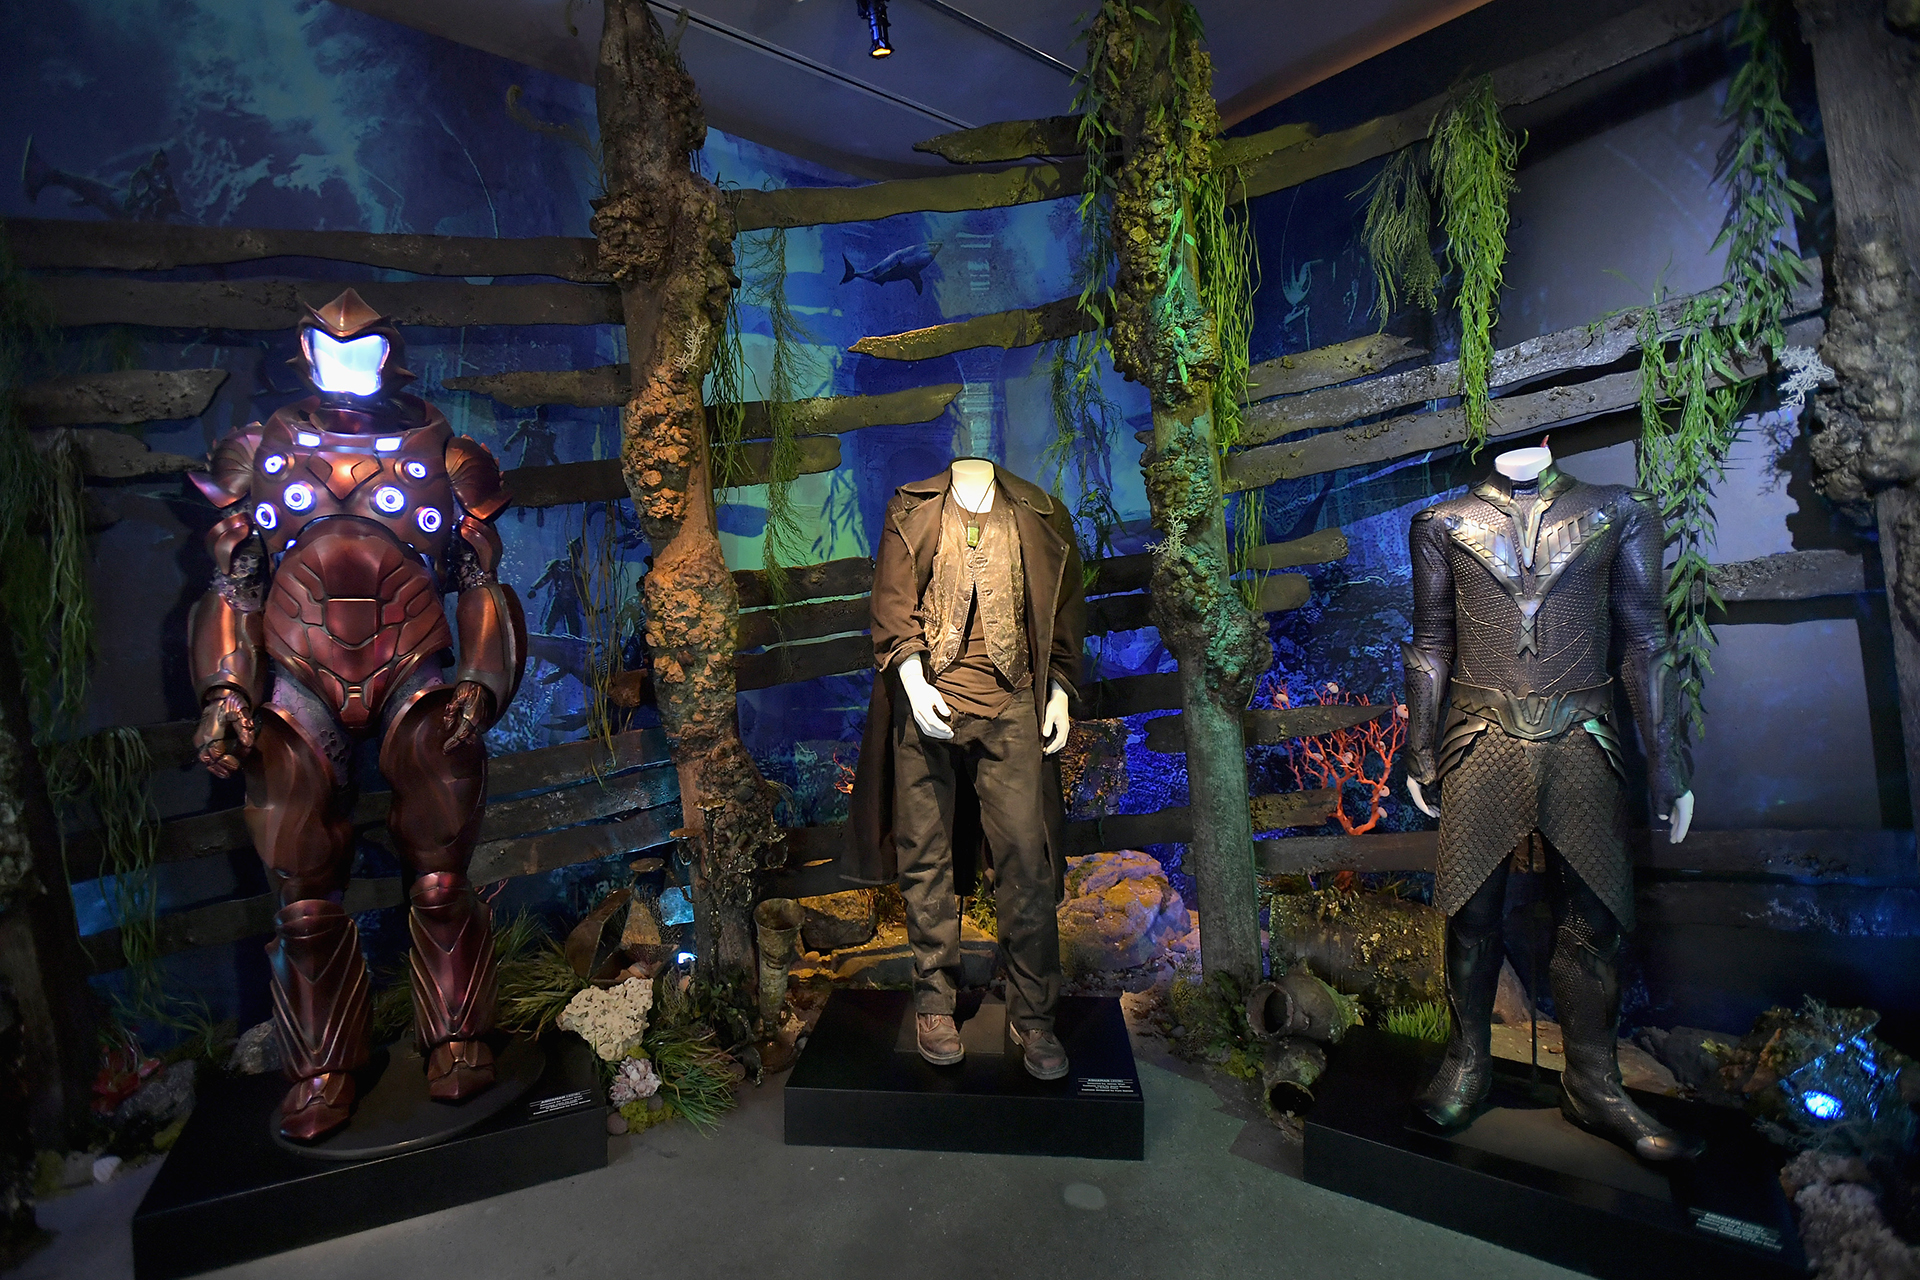 Photo courtesy of Warner Bros. Studio Tour.